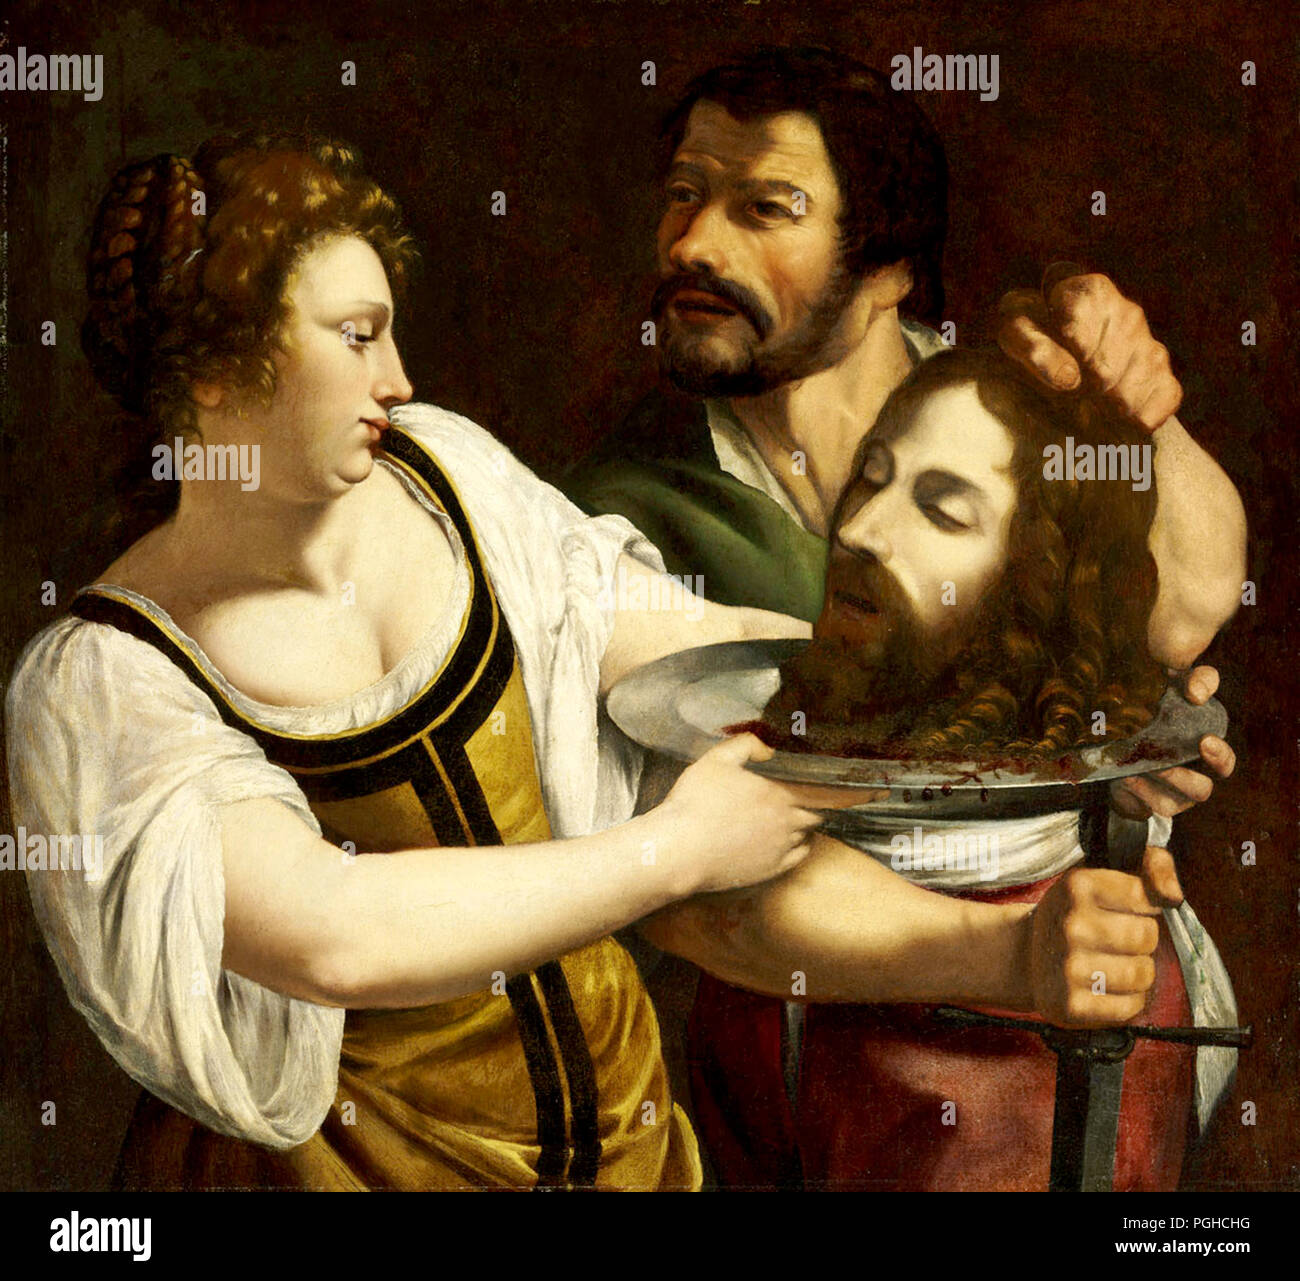 Salome with the Head of Saint John the Baptist by Artemisia Gentileschi - Stock Image